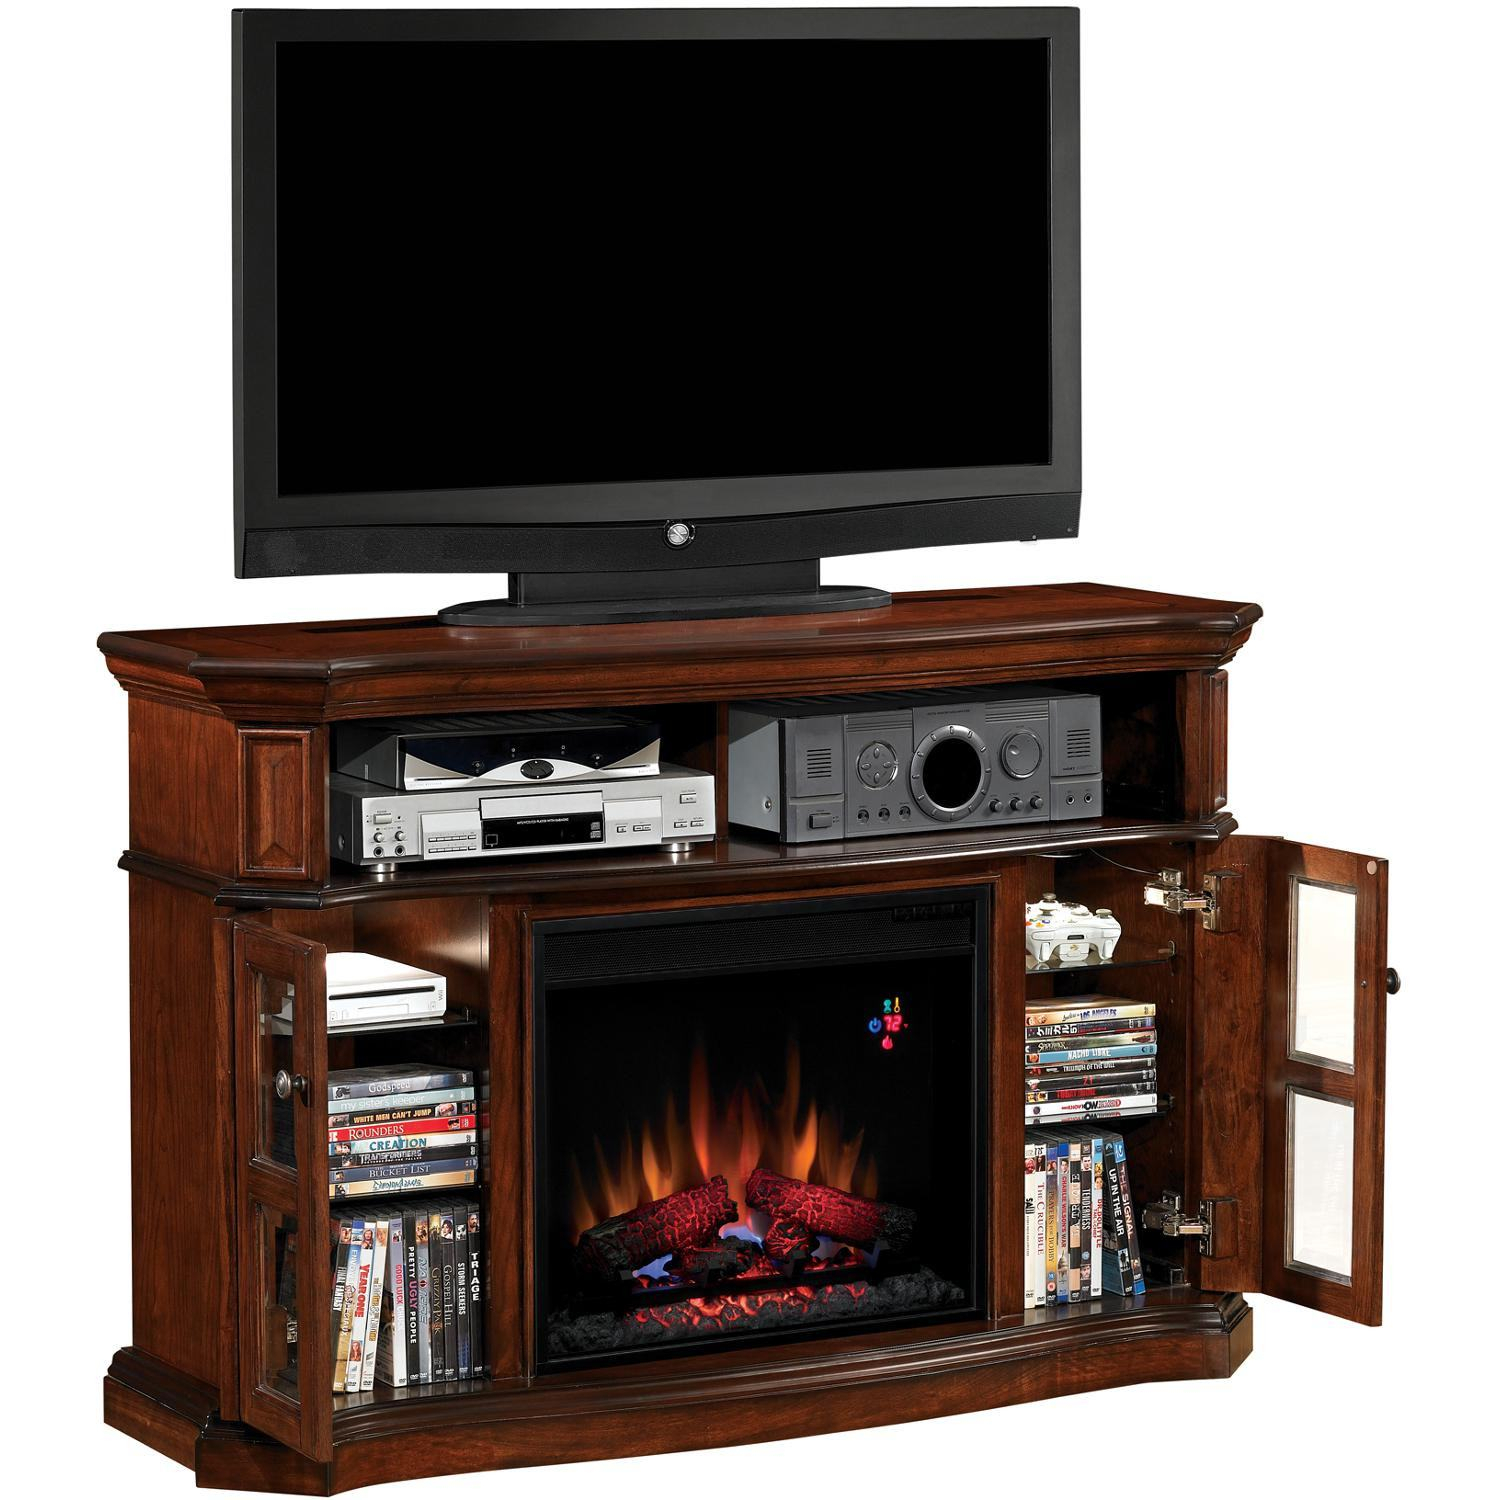 25 Creative 54 Inch Tv Stand Pictures | Cakestandlady In Sinclair Blue 54 Inch Tv Stands (View 14 of 30)